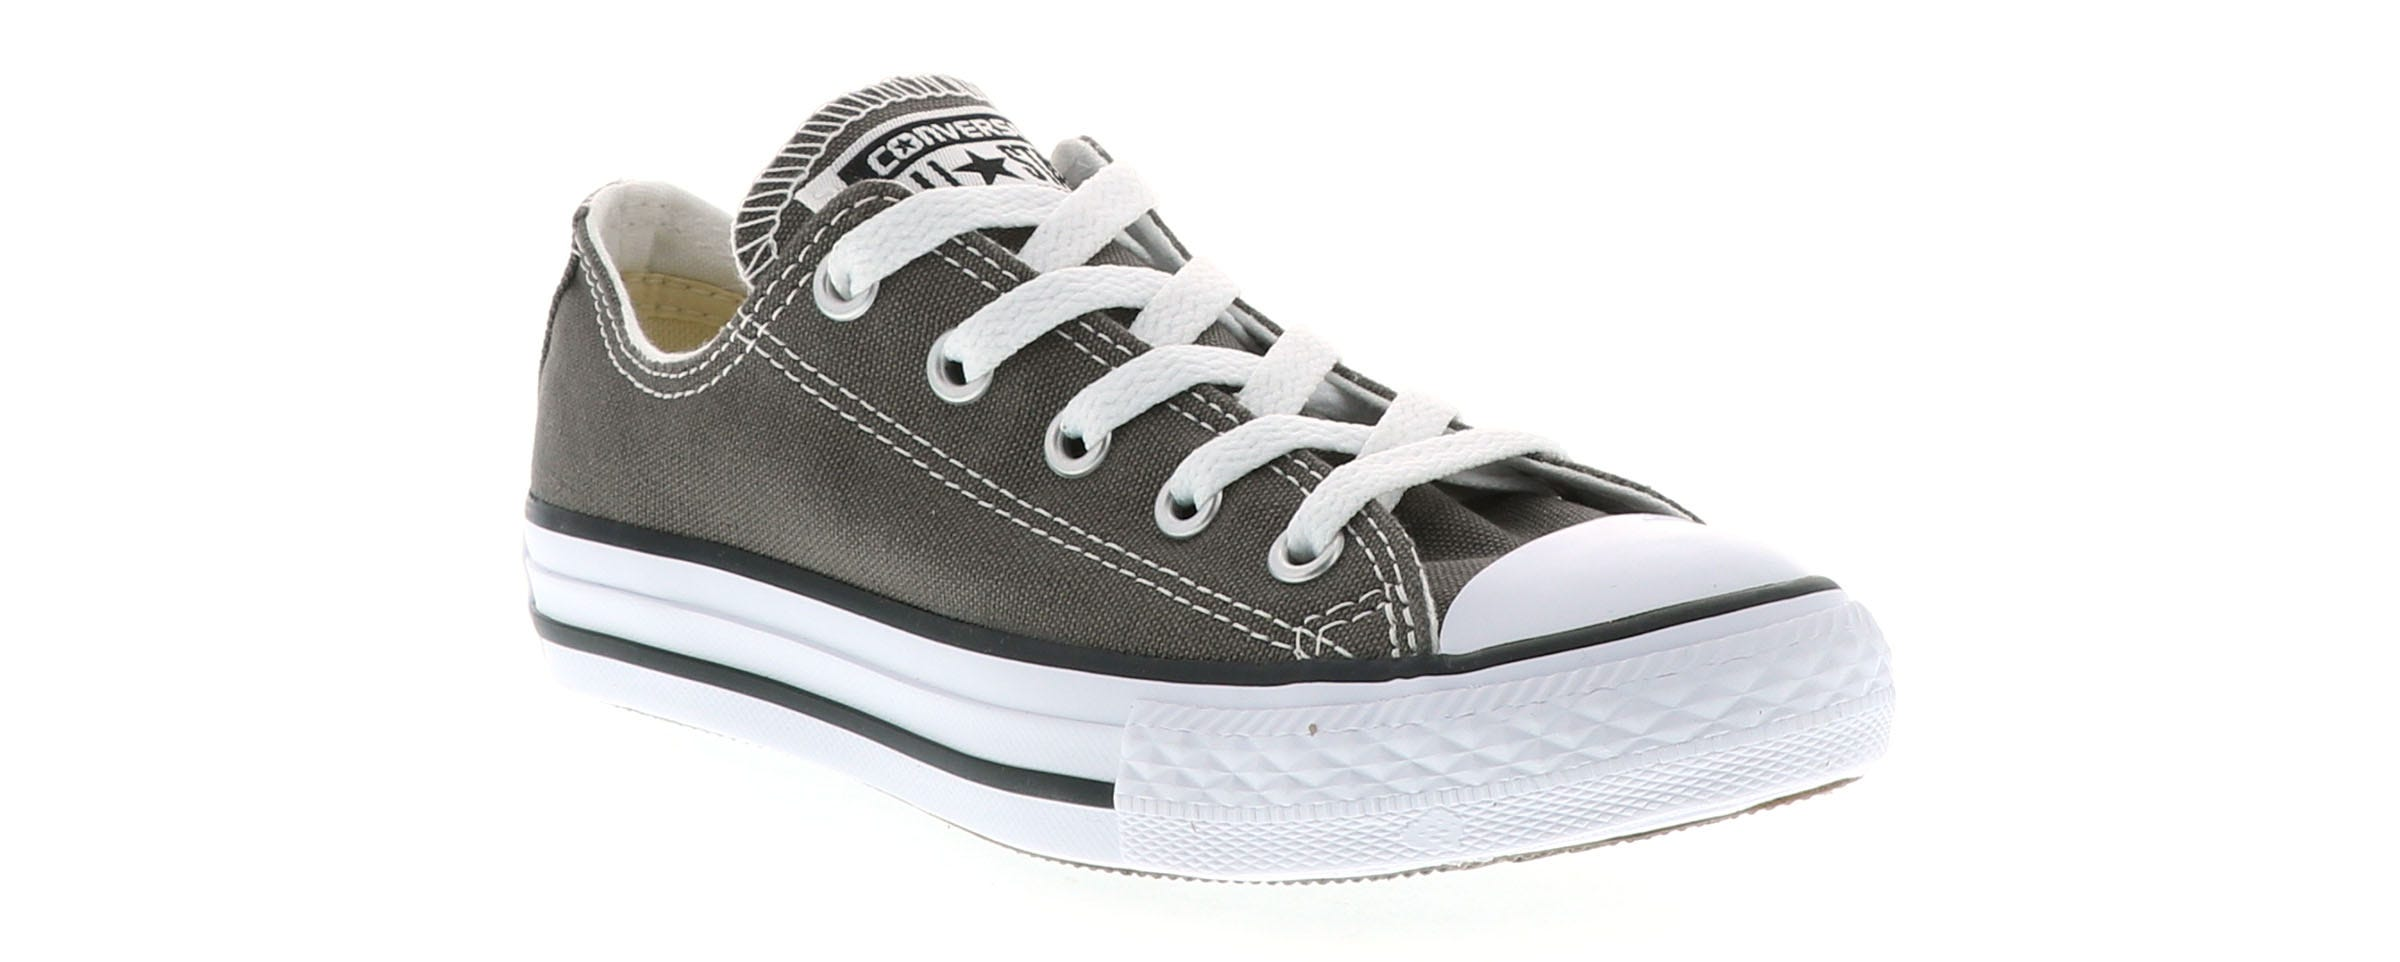 CONVERSE CHUCK TAYLOR ALL STAR OX MOUSE CVMOUJ 351179C